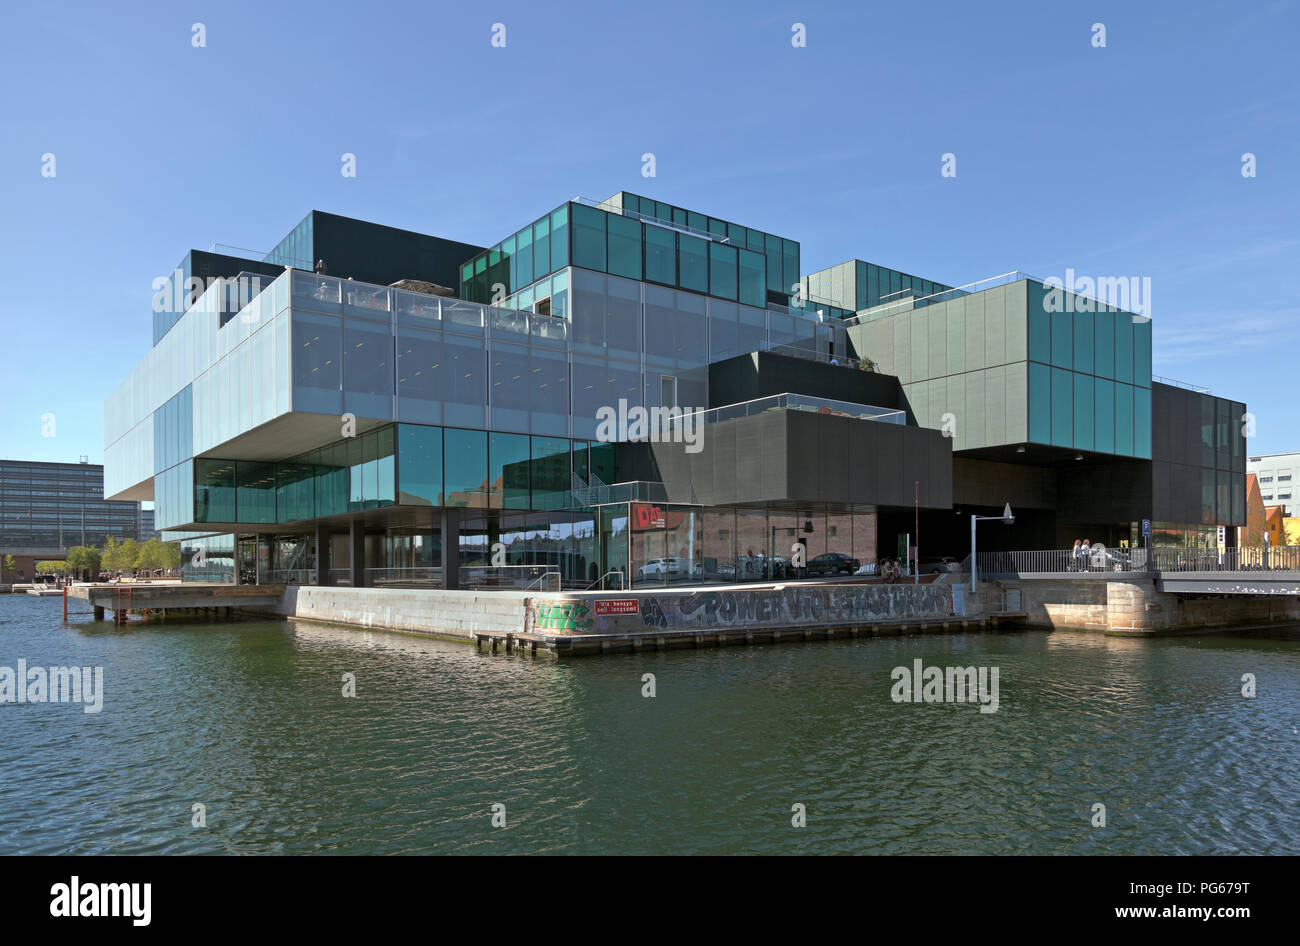 The BLOX building, also housing the Danish Architecture Centre, a new prestige project for architecture and design on Christians Brygge in Copenhagen. Stock Photo